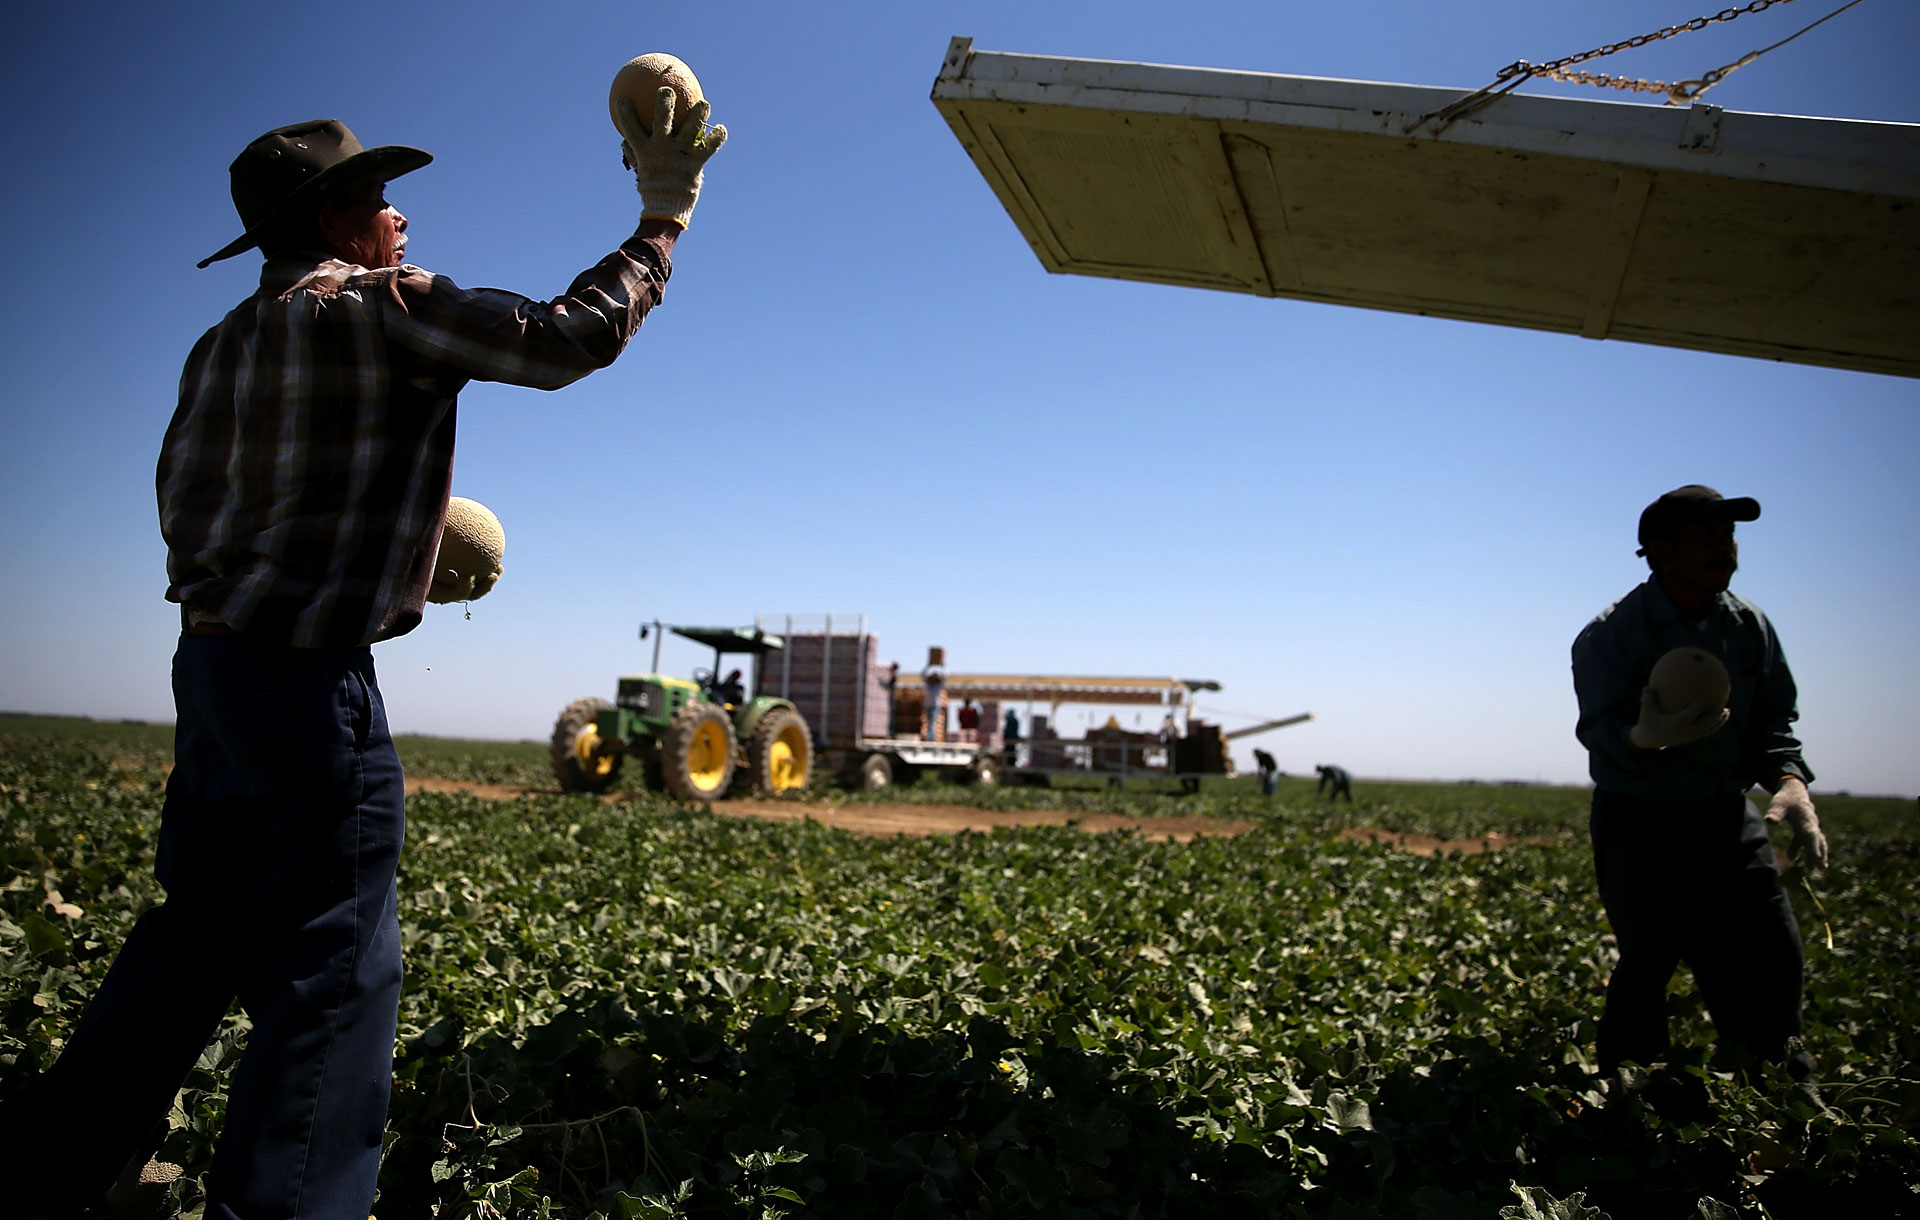 A worker harvests cantaloupes on a farm on August 22, 2014 near the Central Valley town of Firebaugh.